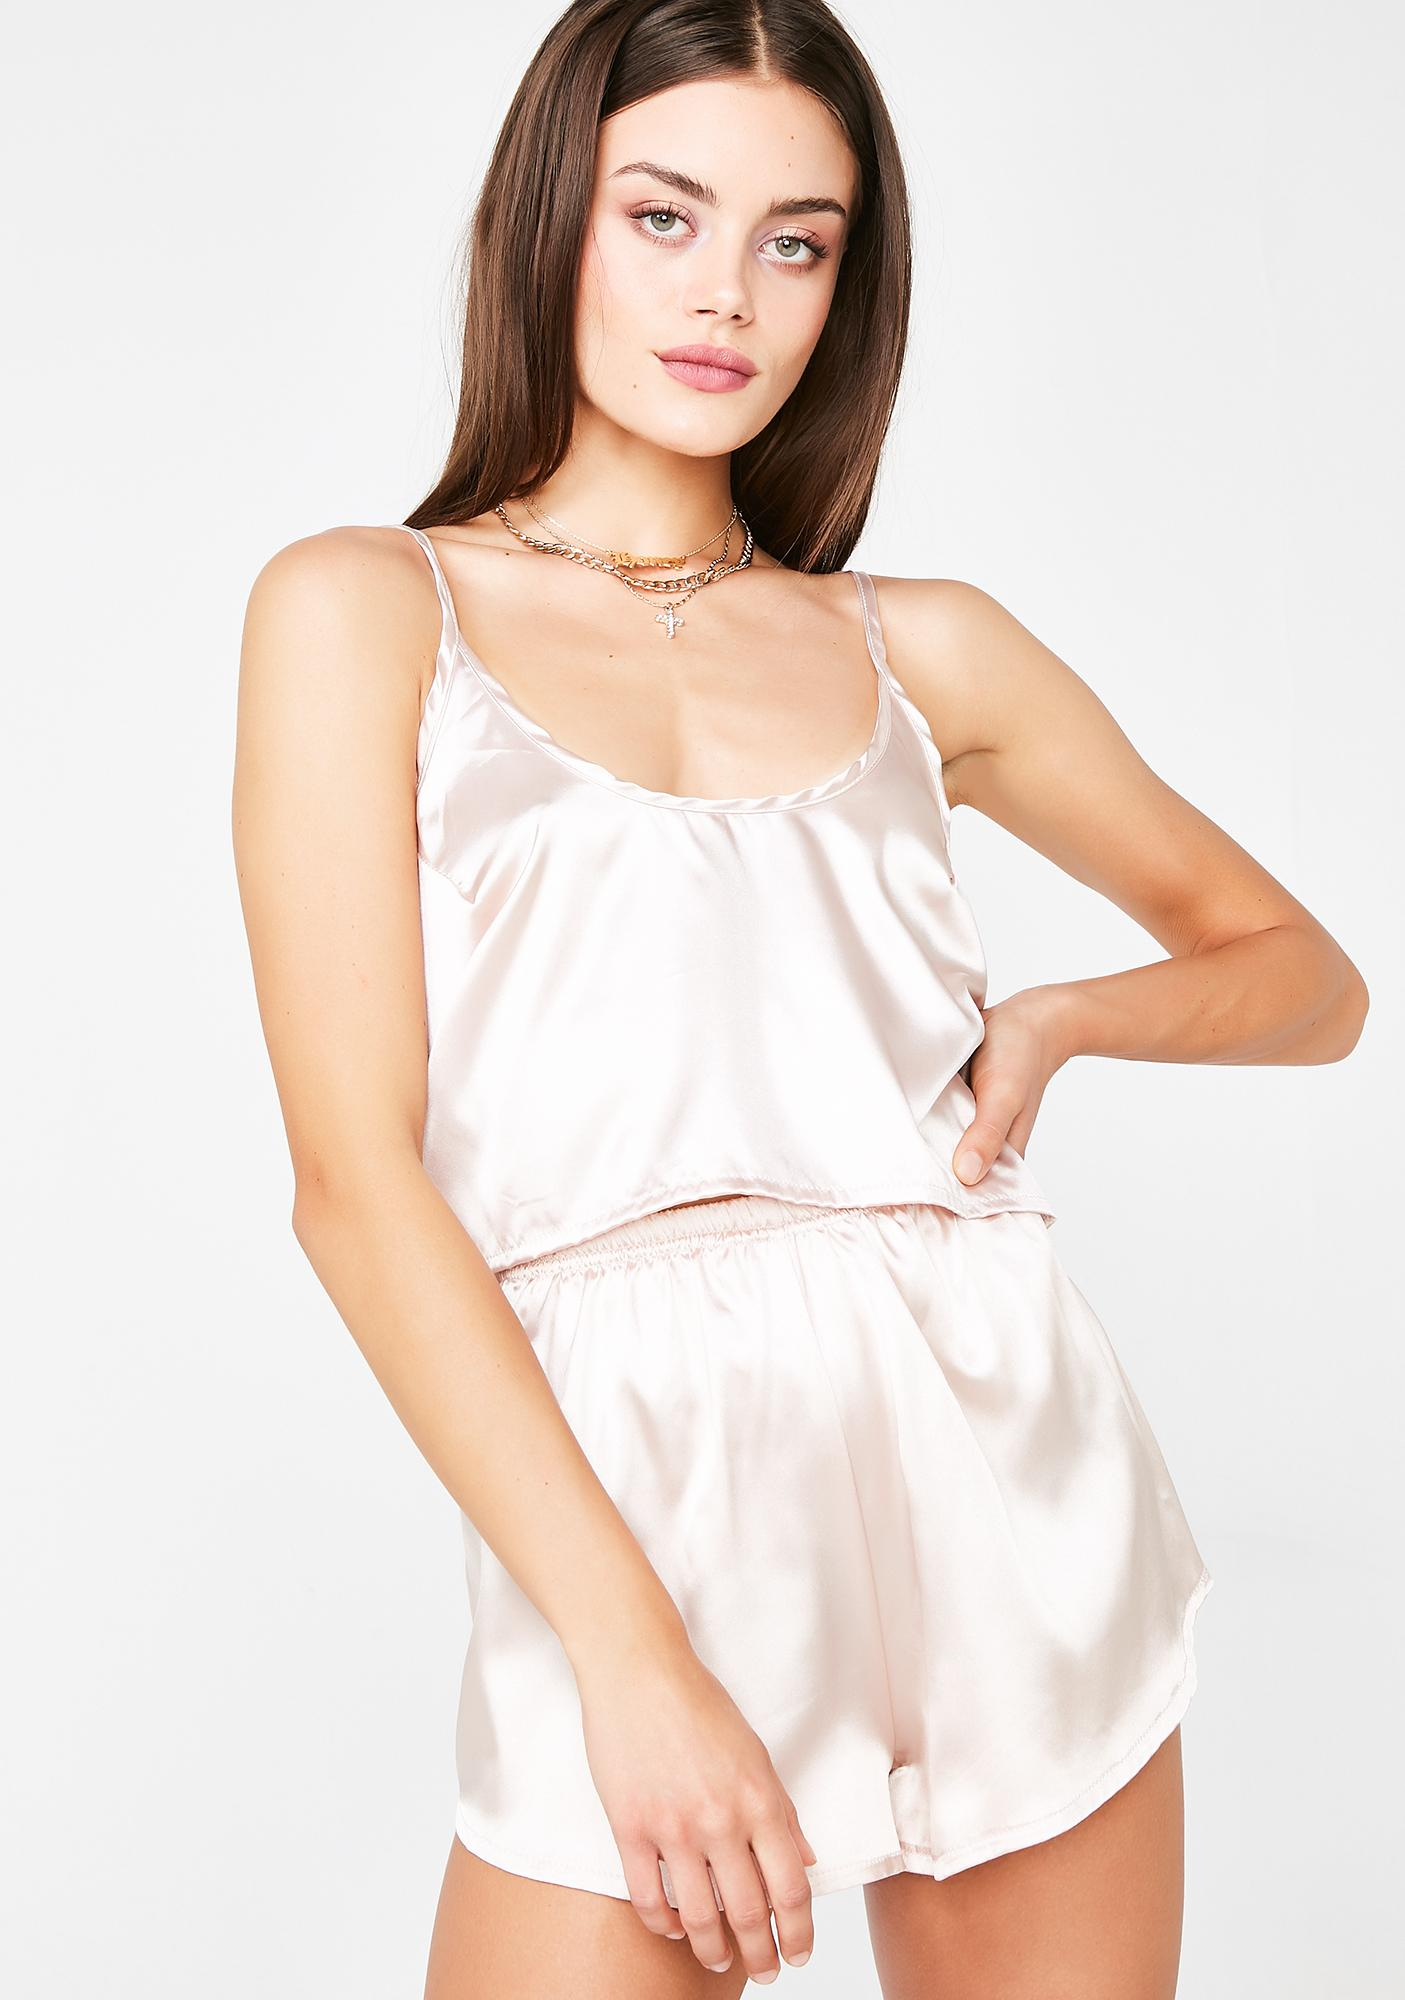 My Mum Made It Satin Crop Camisole N' Shorts Twin Set